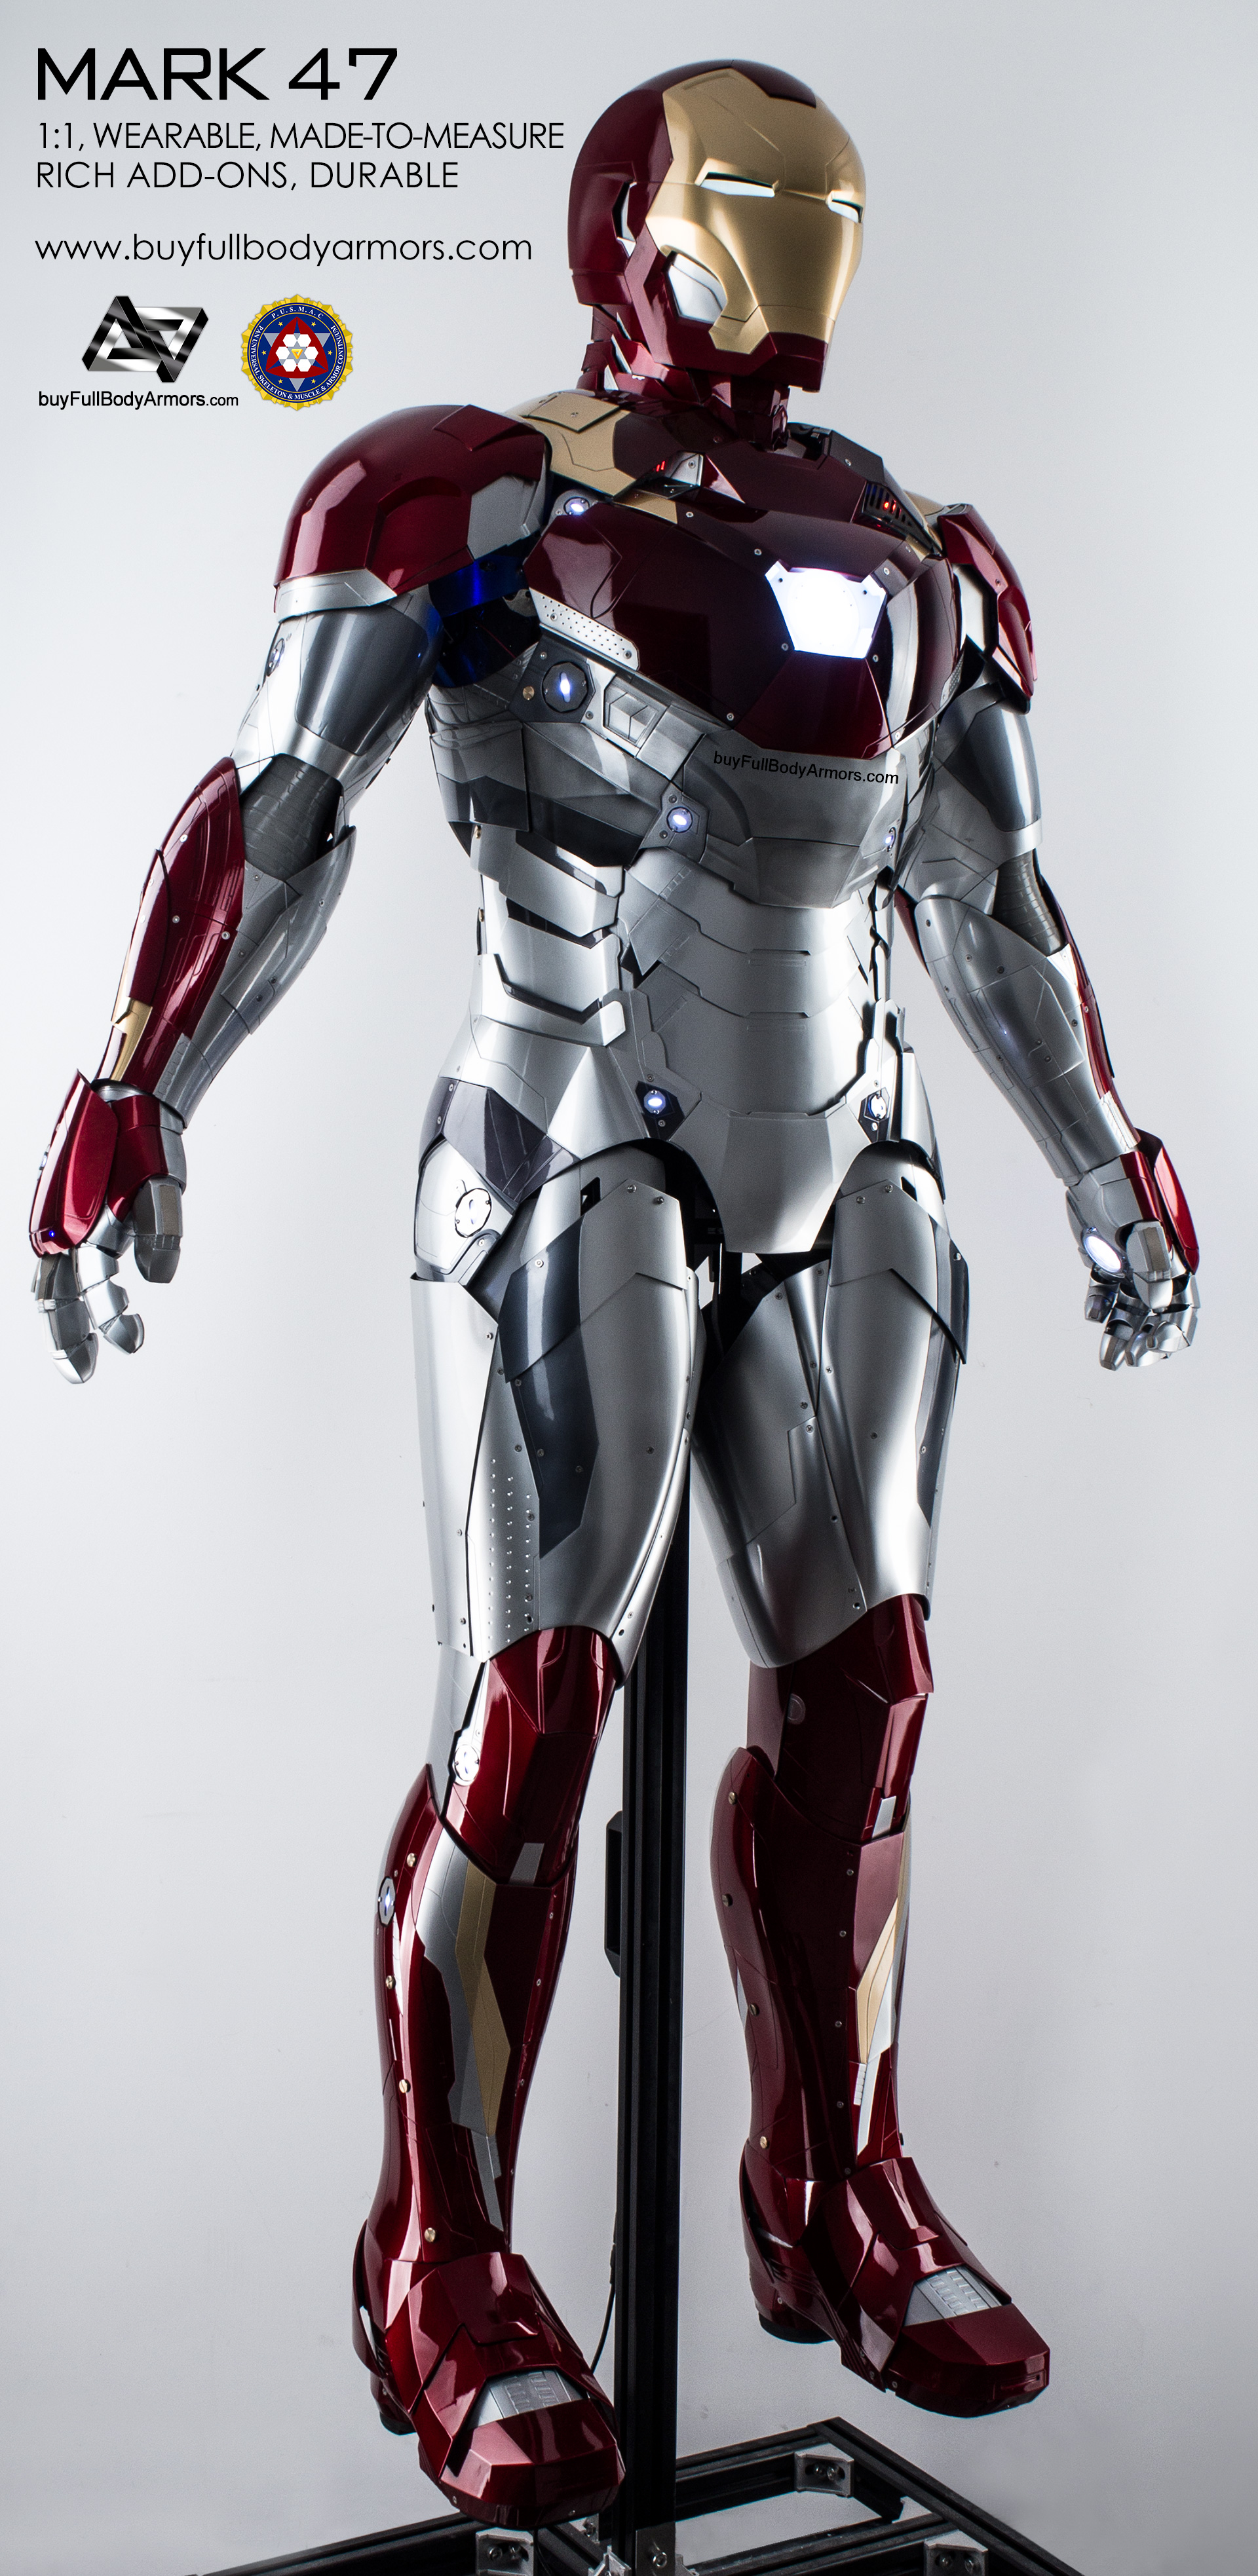 WEARABLE IRON MAN MARK 47 XLVII ARMOR COSTUME – the most anticipated ...